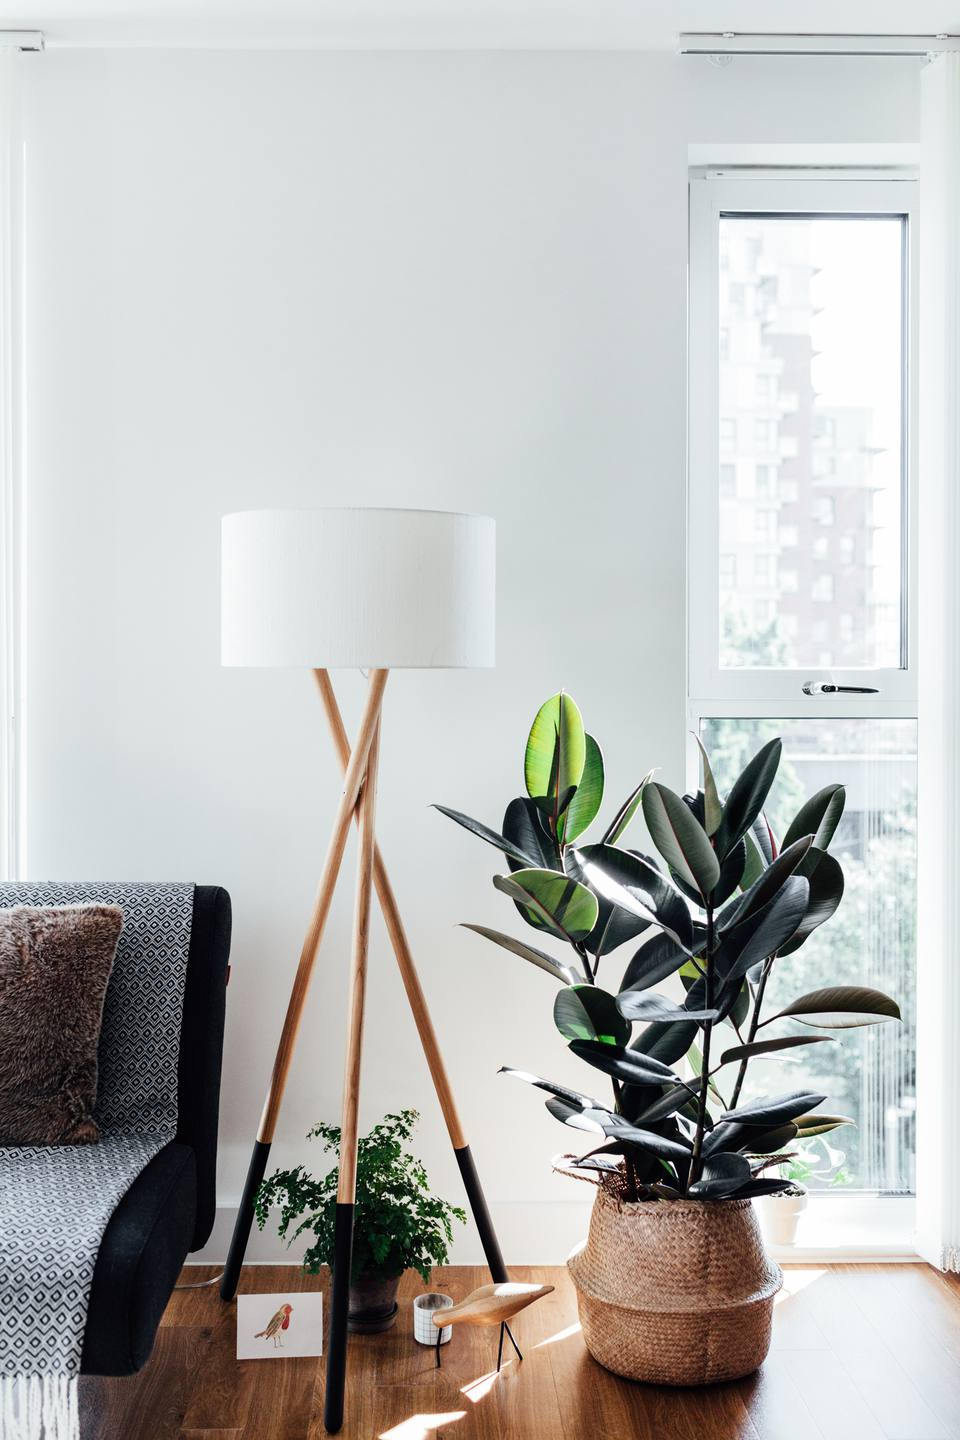 Growing Rubber Plant Ficus Elastic Indoors